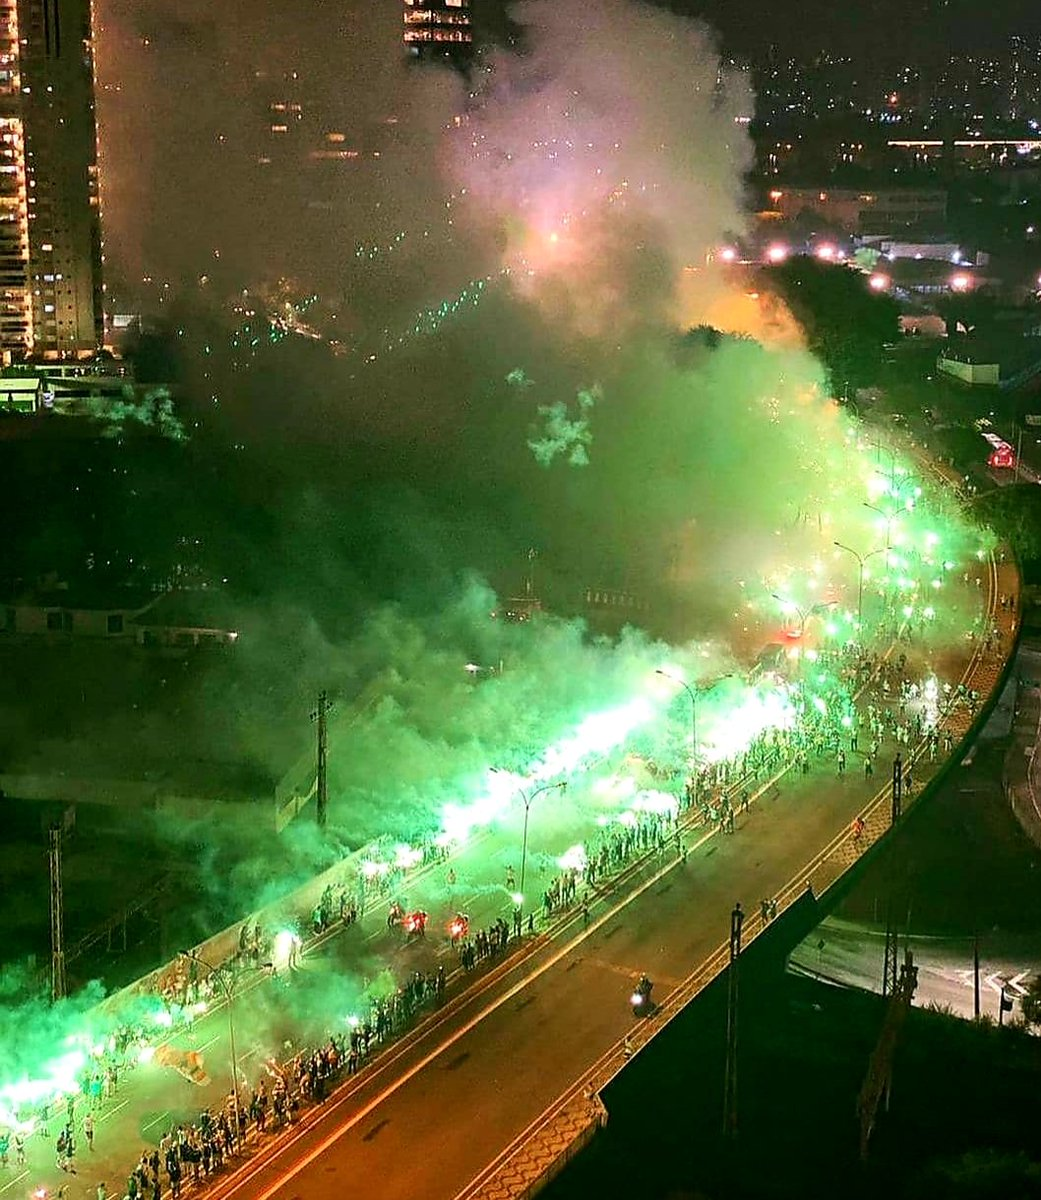 Palmeiras fans boosted their players last night ahead of the semi-final of the copa libertadores vs River Plate. https://t.co/yWWeqsHWLd